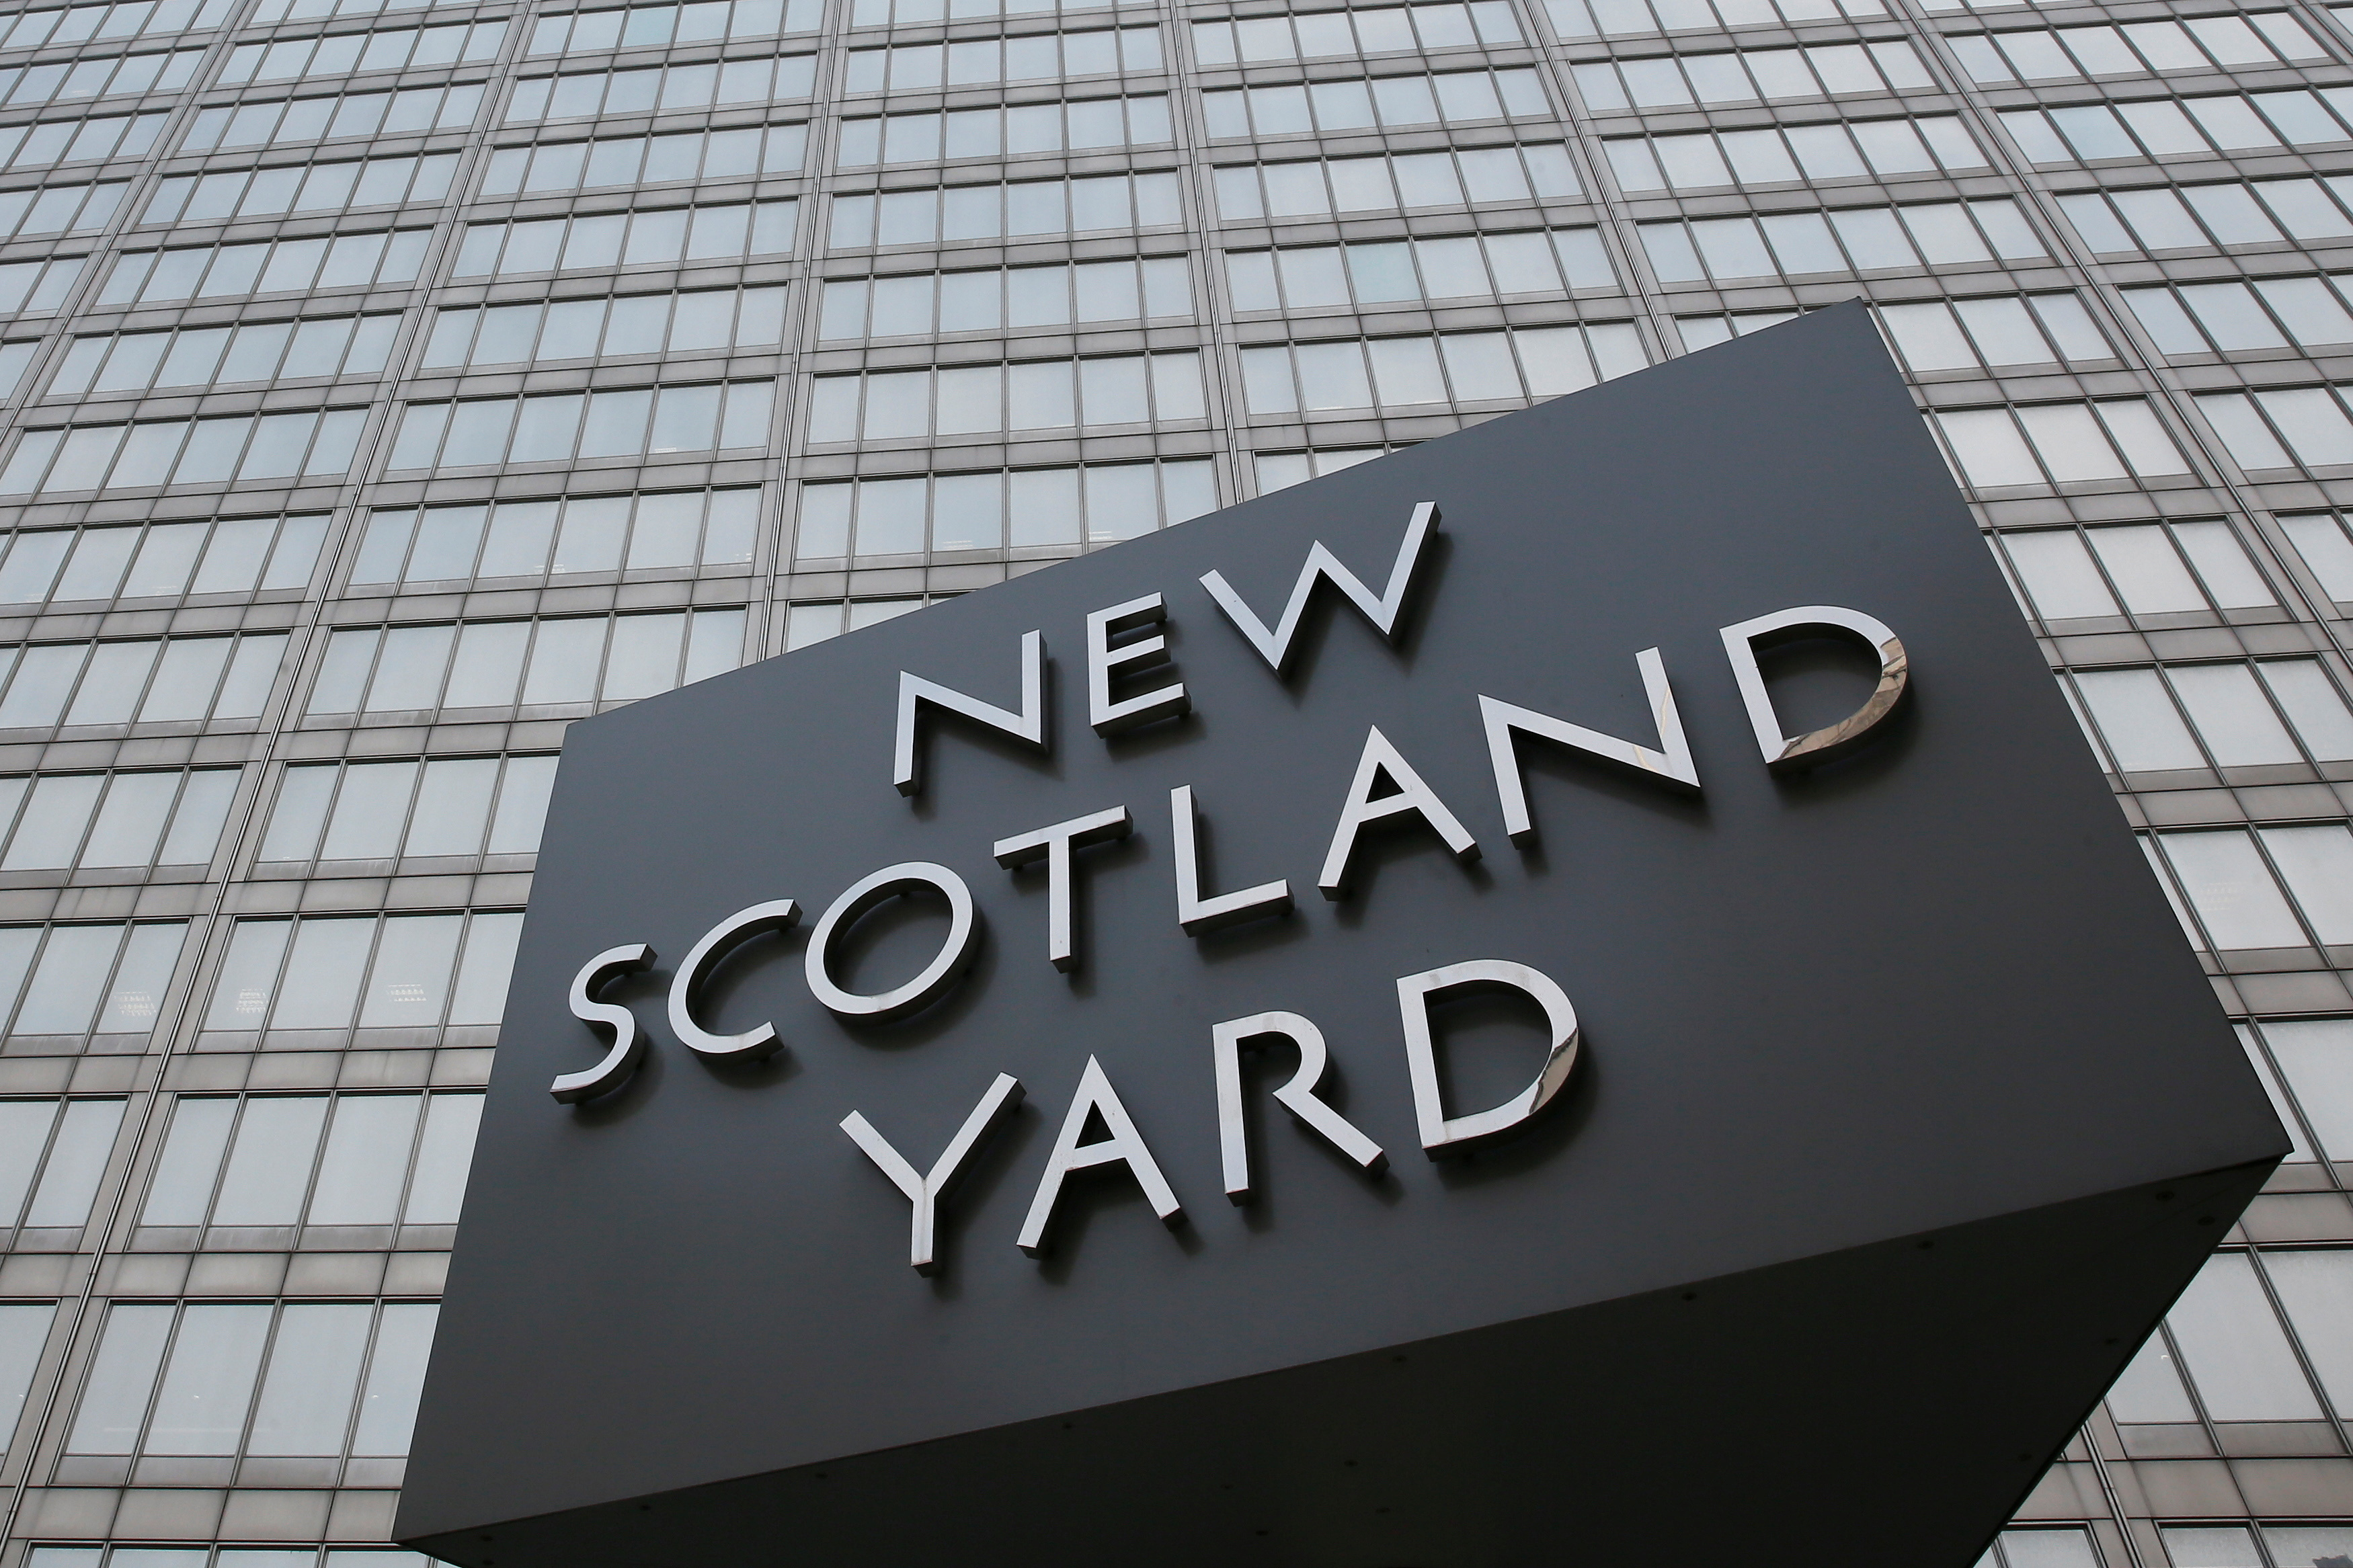 The rotating triangular sign is seen outside New Scotland Yard in central London March 17, 2015. REUTERS/Stefan Wermuth